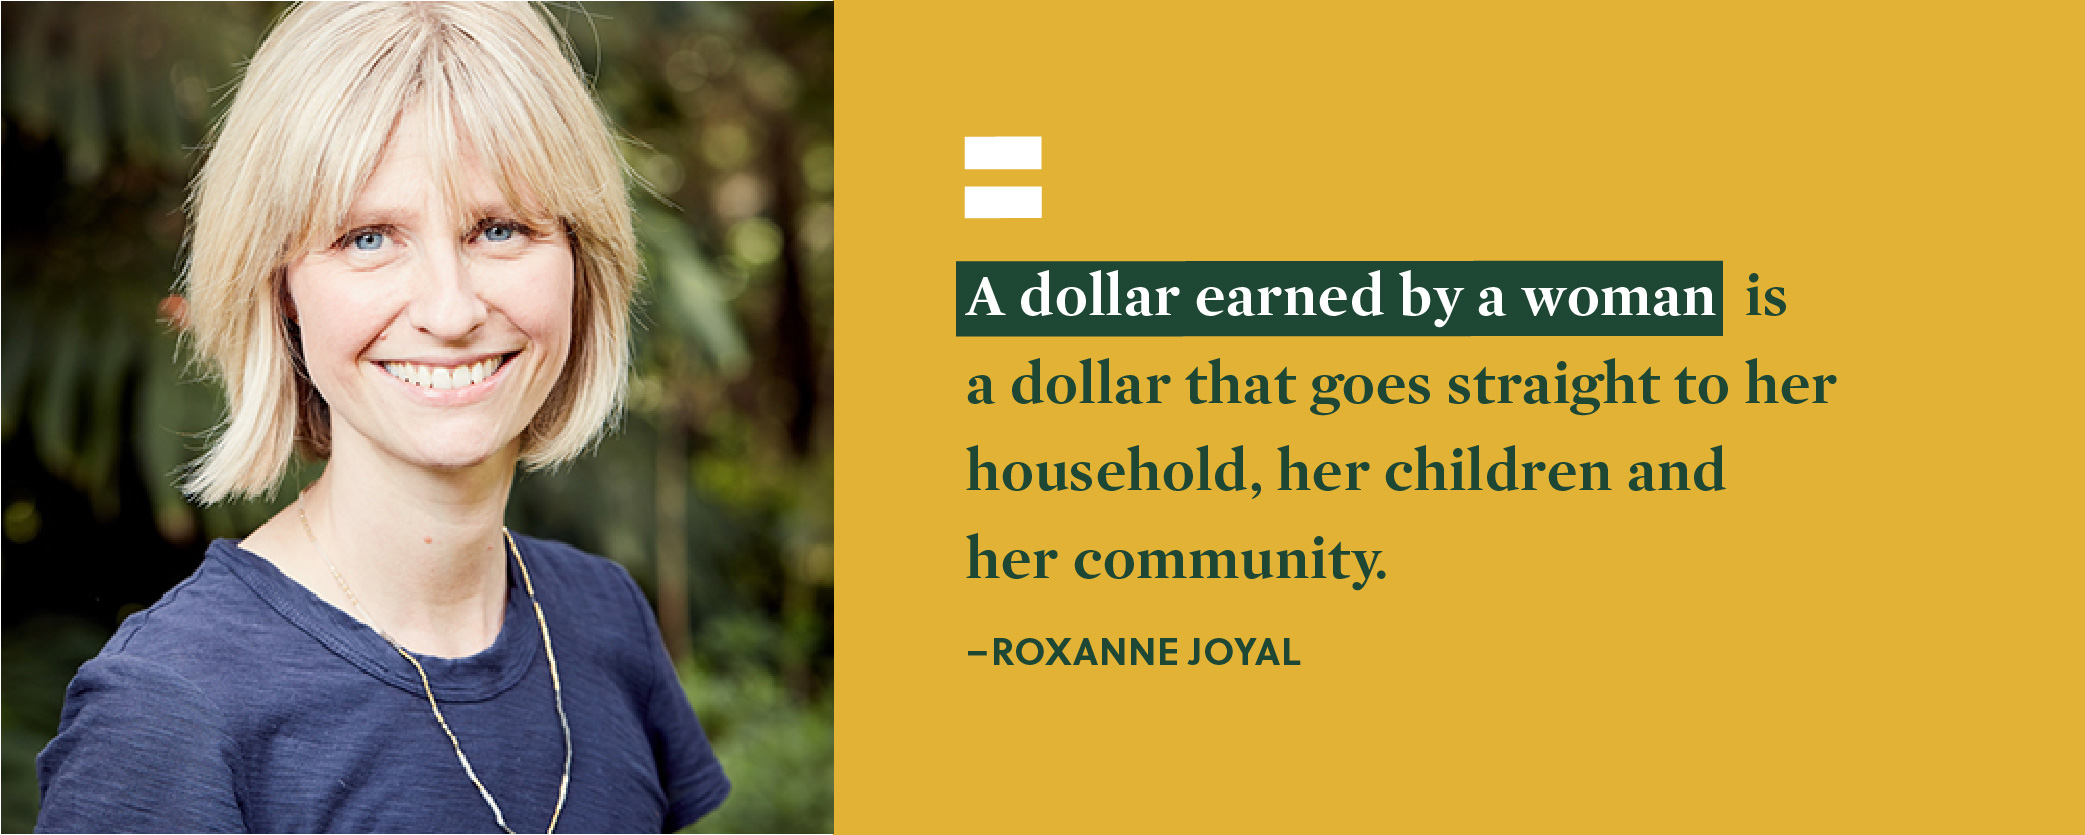 Quote. A dollar earned by a women is a dollar that goes straight to her household, her children and her community. Unquote. Roxanne Joyal.